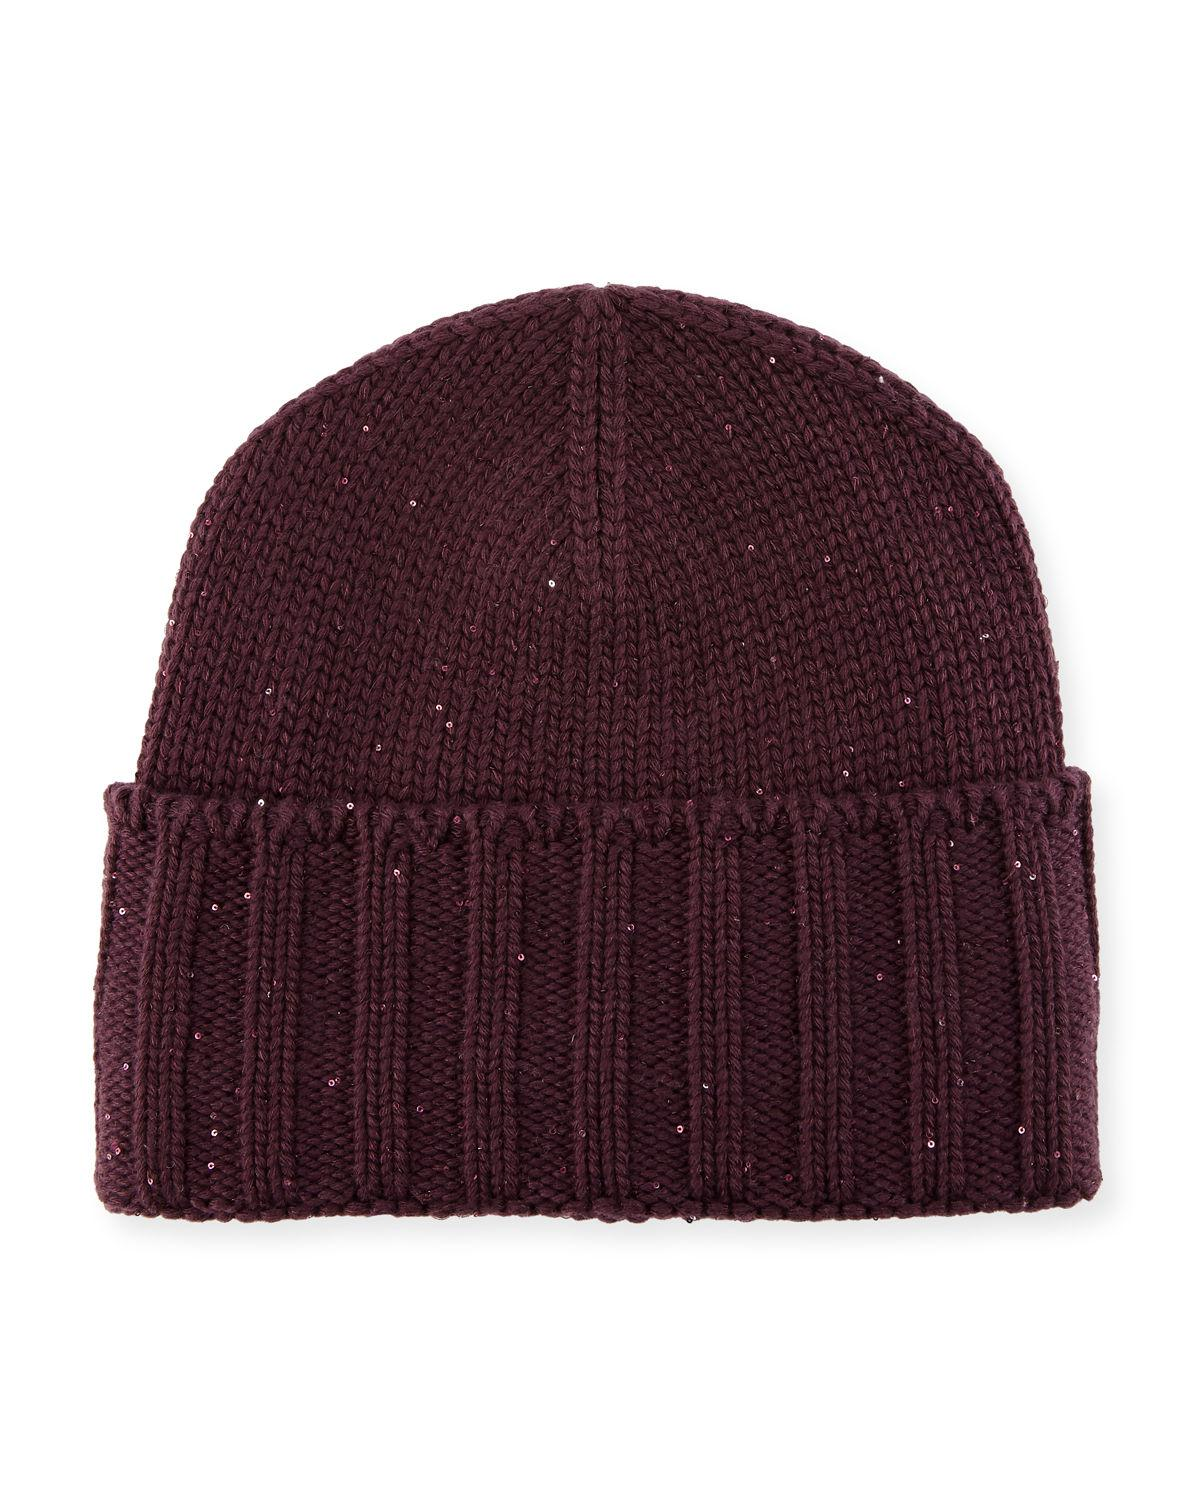 26f811309dc3 Lyst - Loro Piana Midnight Baby Cashmere Berretto Knit Beanie Cap in ...